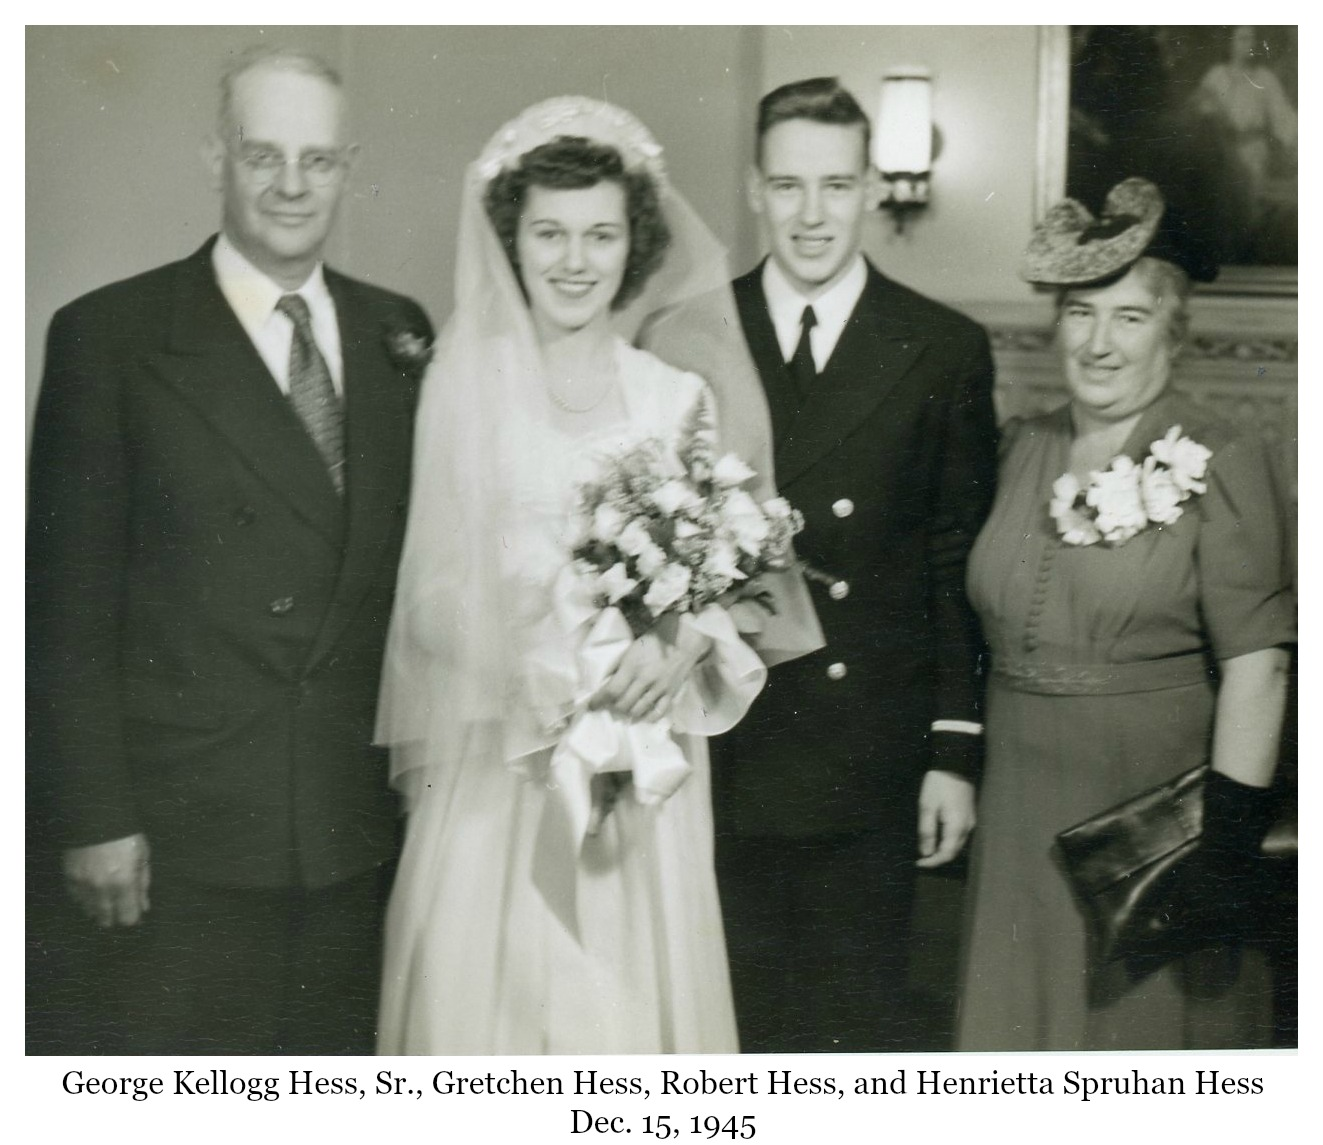 Gretchen and Bob Hess wedding photo with George and Henrietta